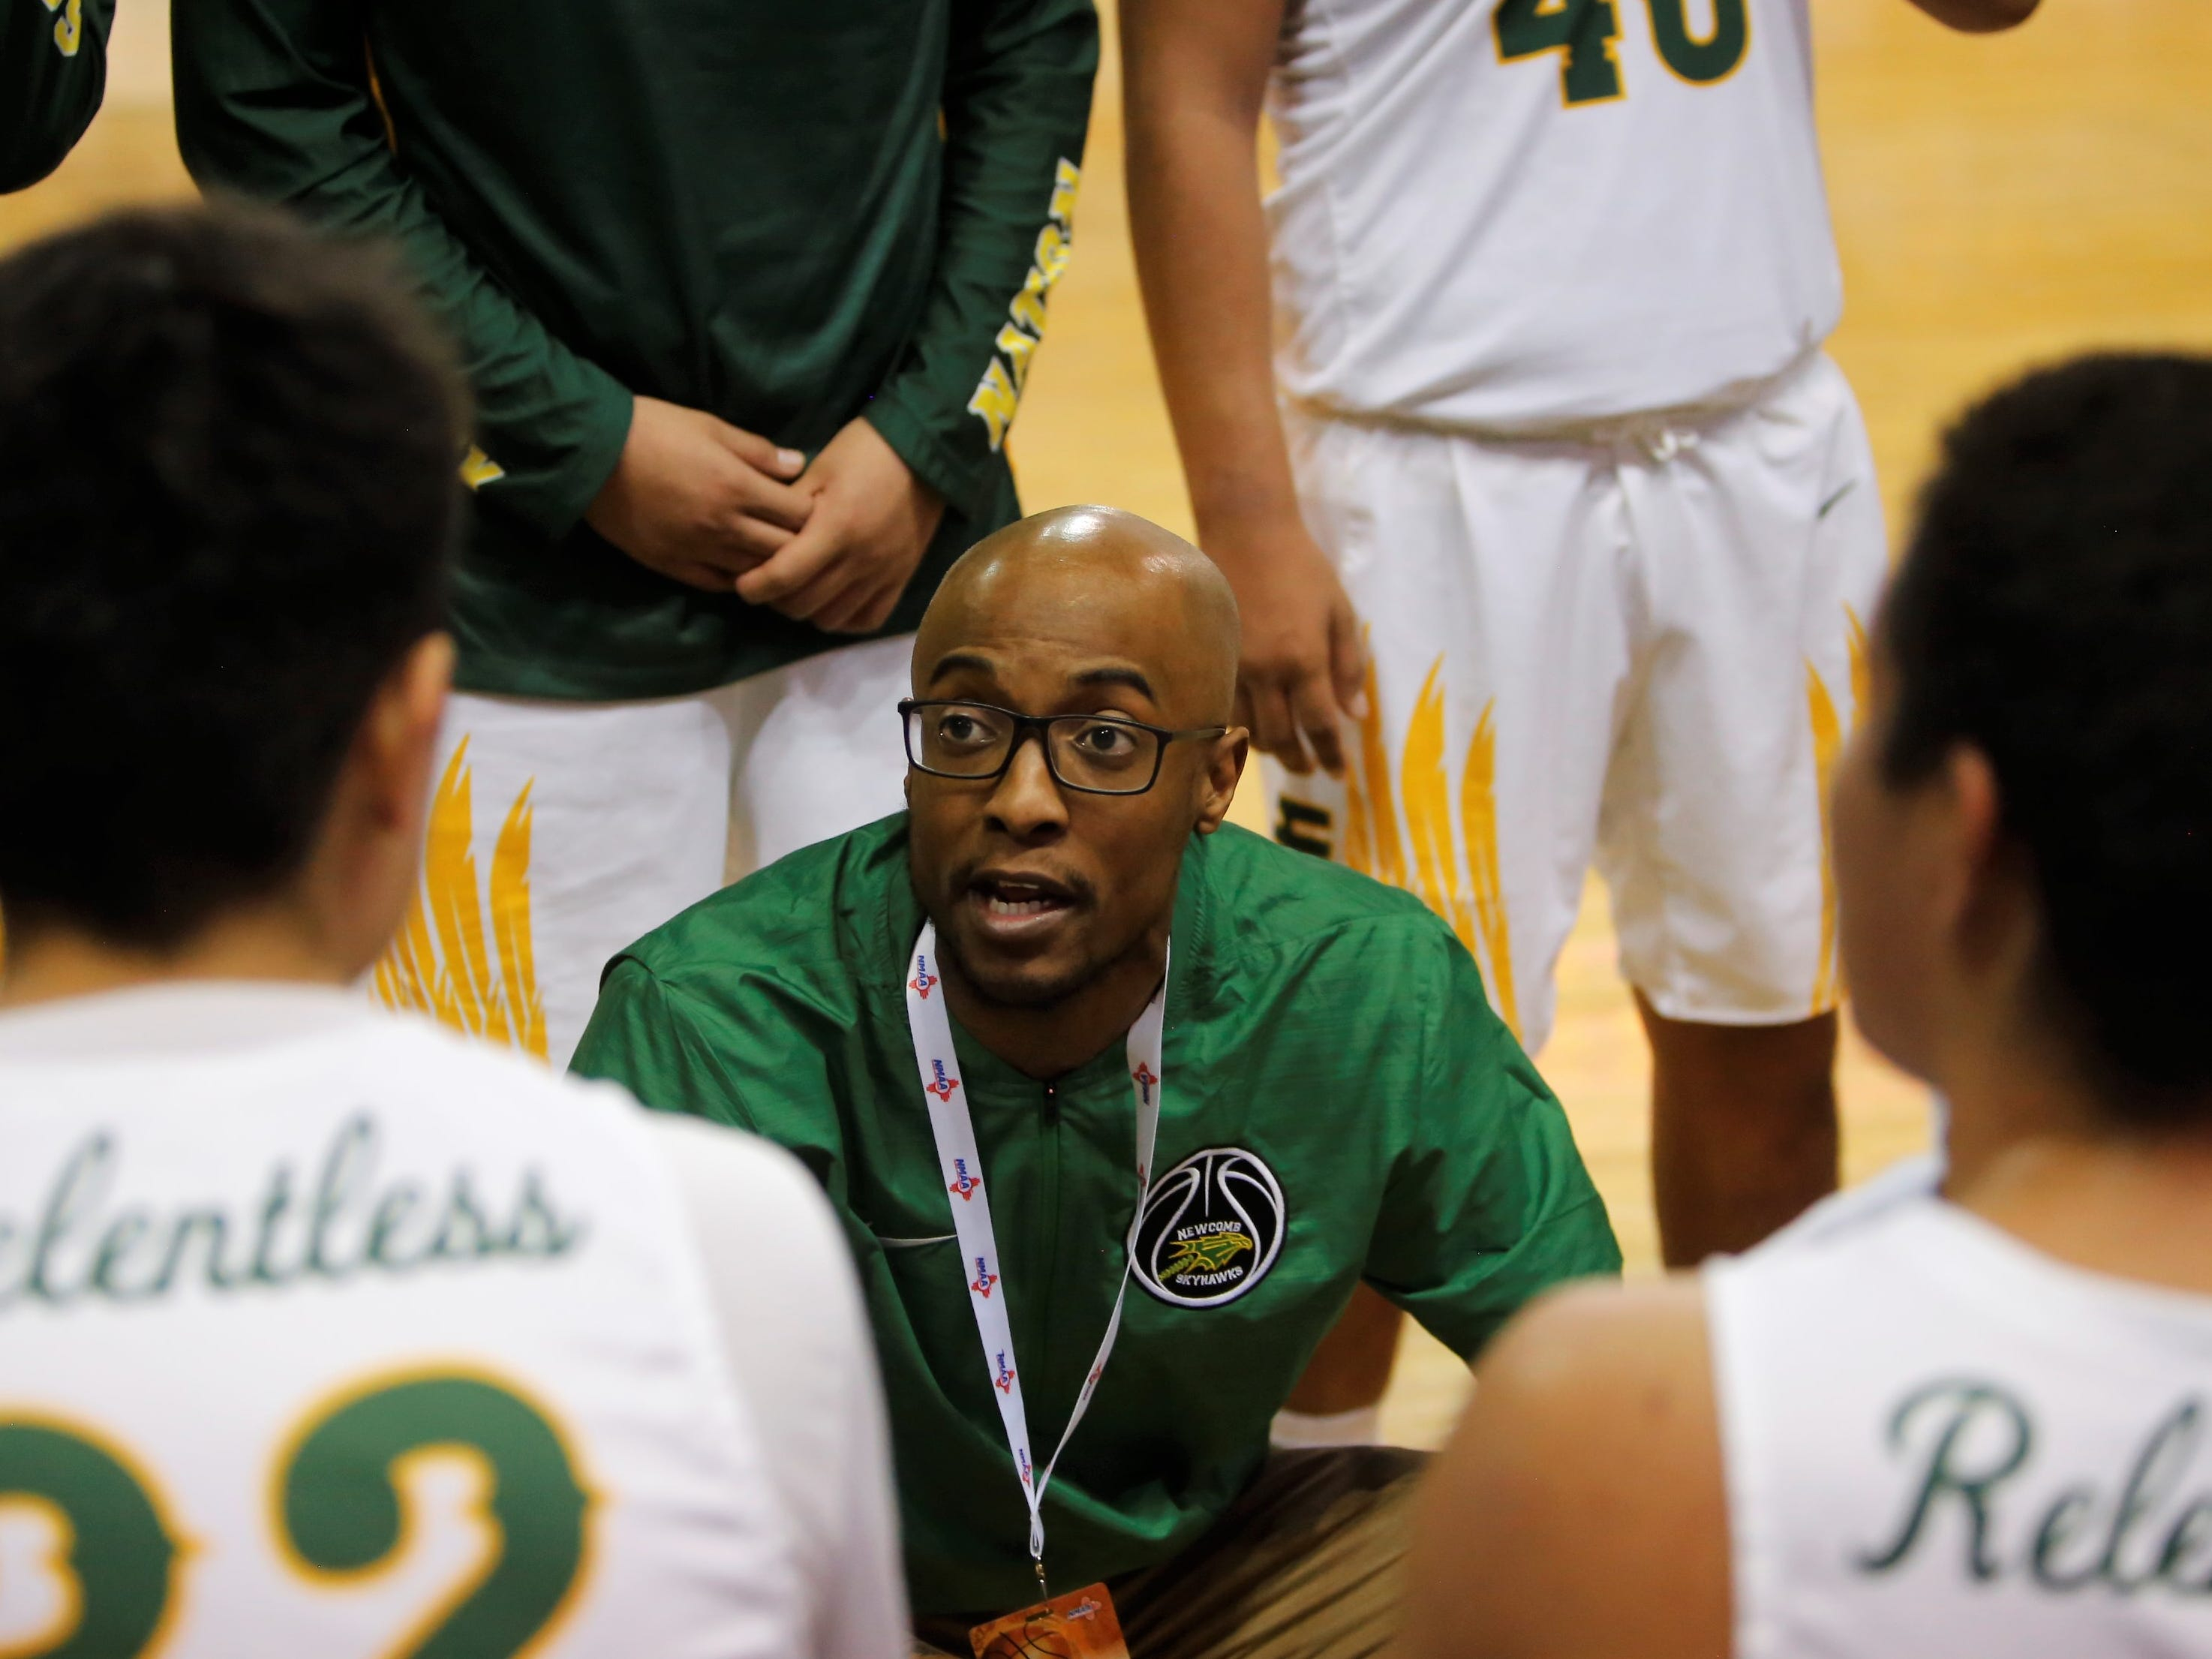 Newcomb coach Dominique Richardson talks to his team in-between quarters against McCurdy during Wednesday's 2A state quarterfinals at the Santa Ana Star Center in Rio Rancho.